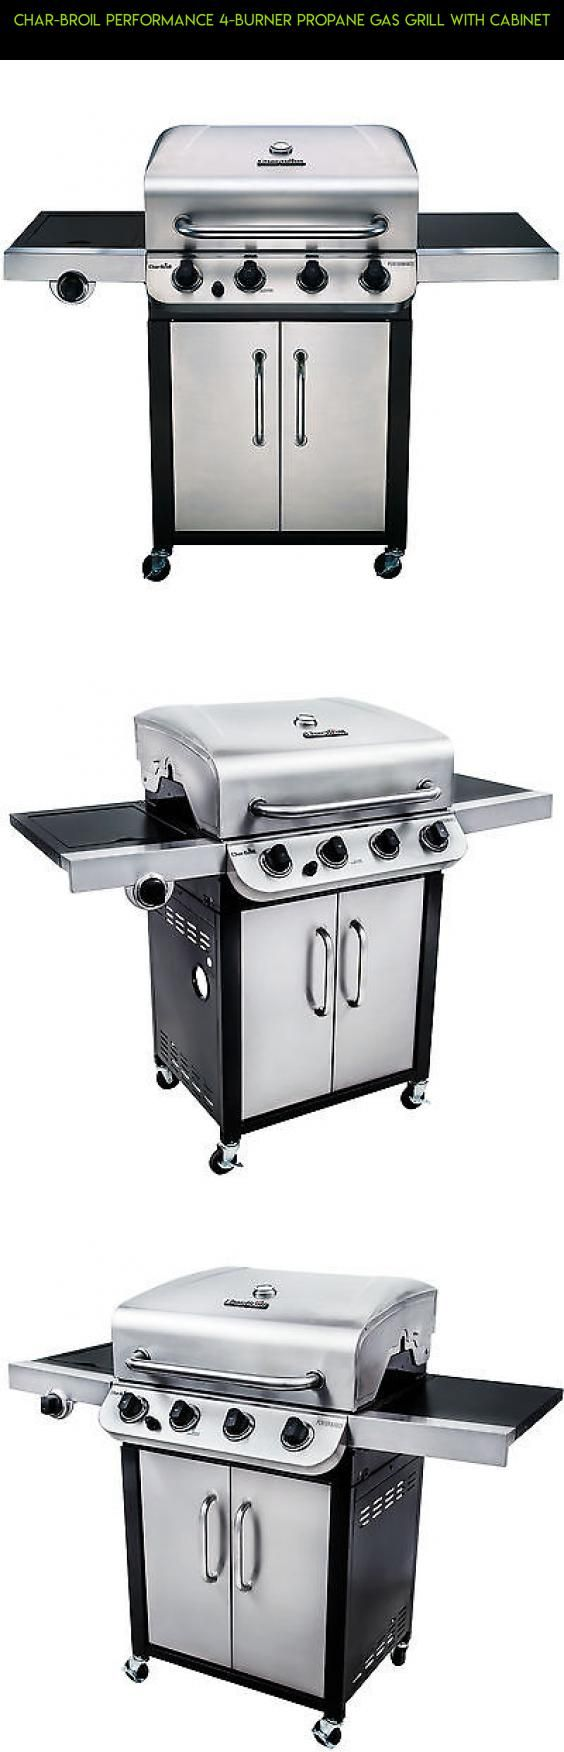 charbroil performance 4burner propane gas grill with cabinet plans technology - Char Broil Gas Grill Parts